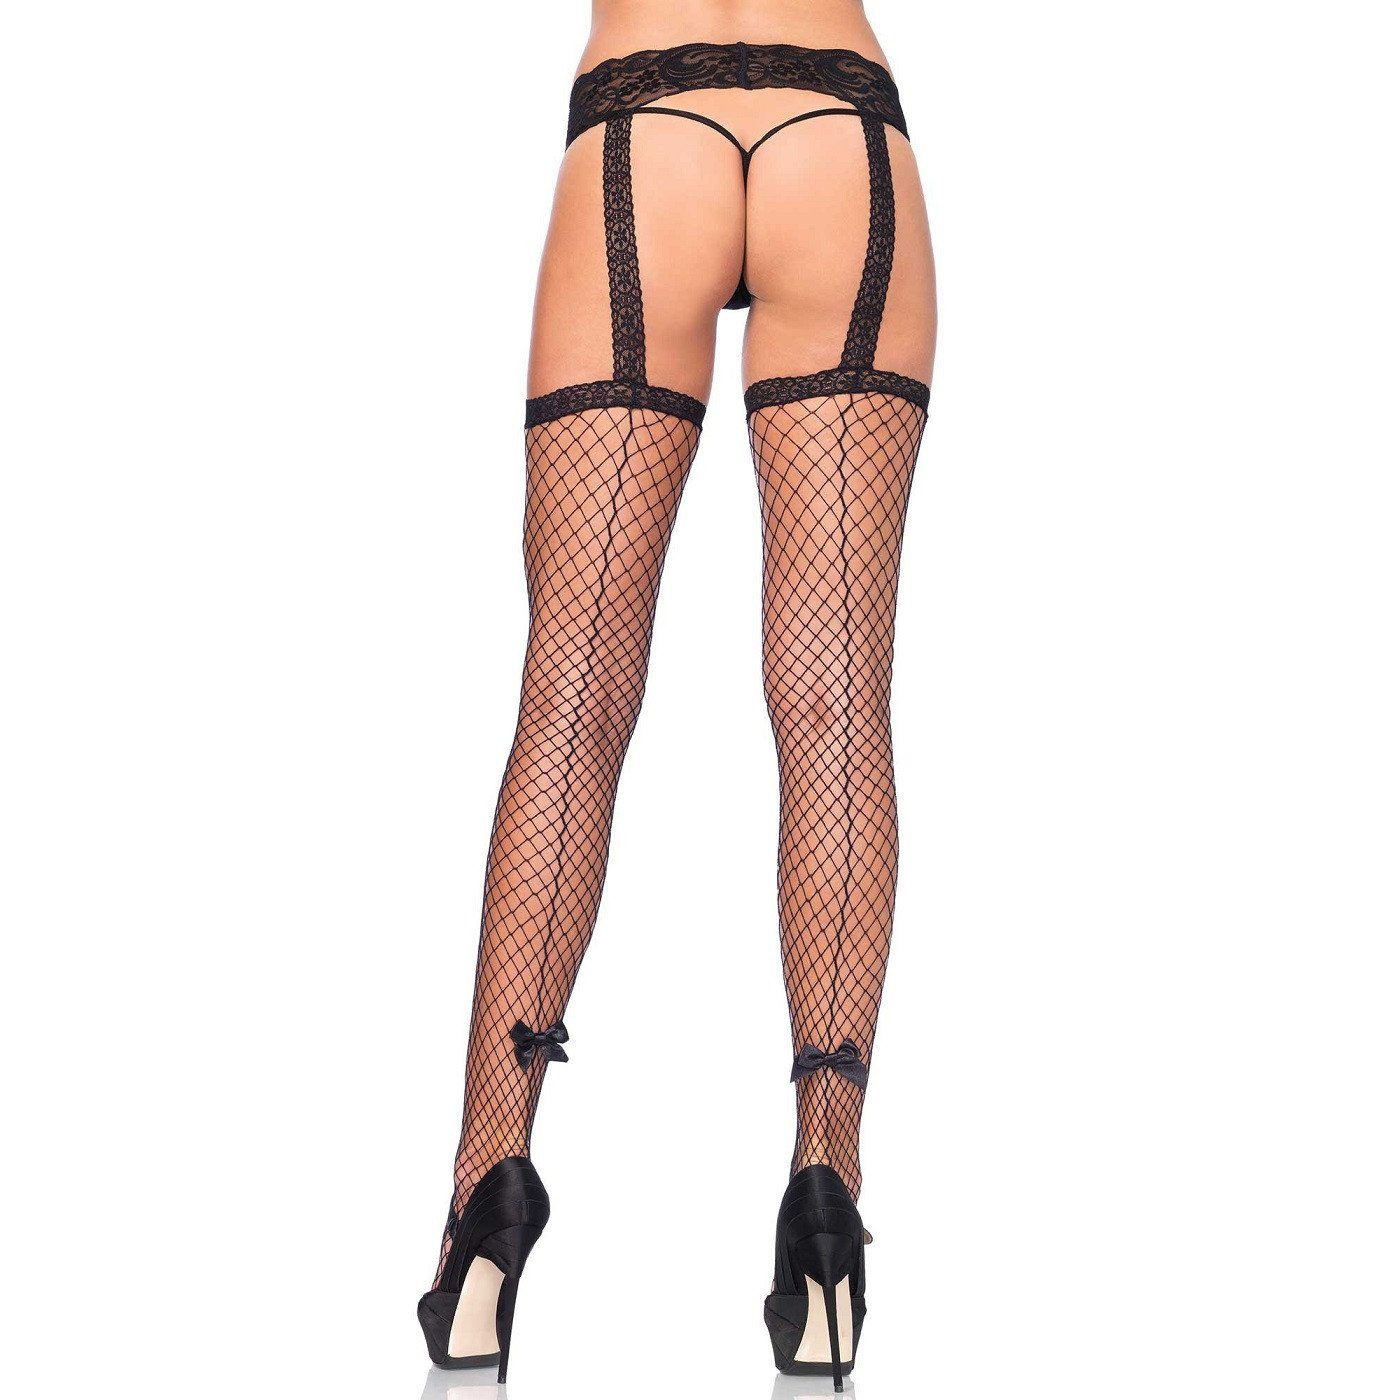 Leg Avenue Seamed Garterbelt Stockings W/Bow - Leggsbeautiful